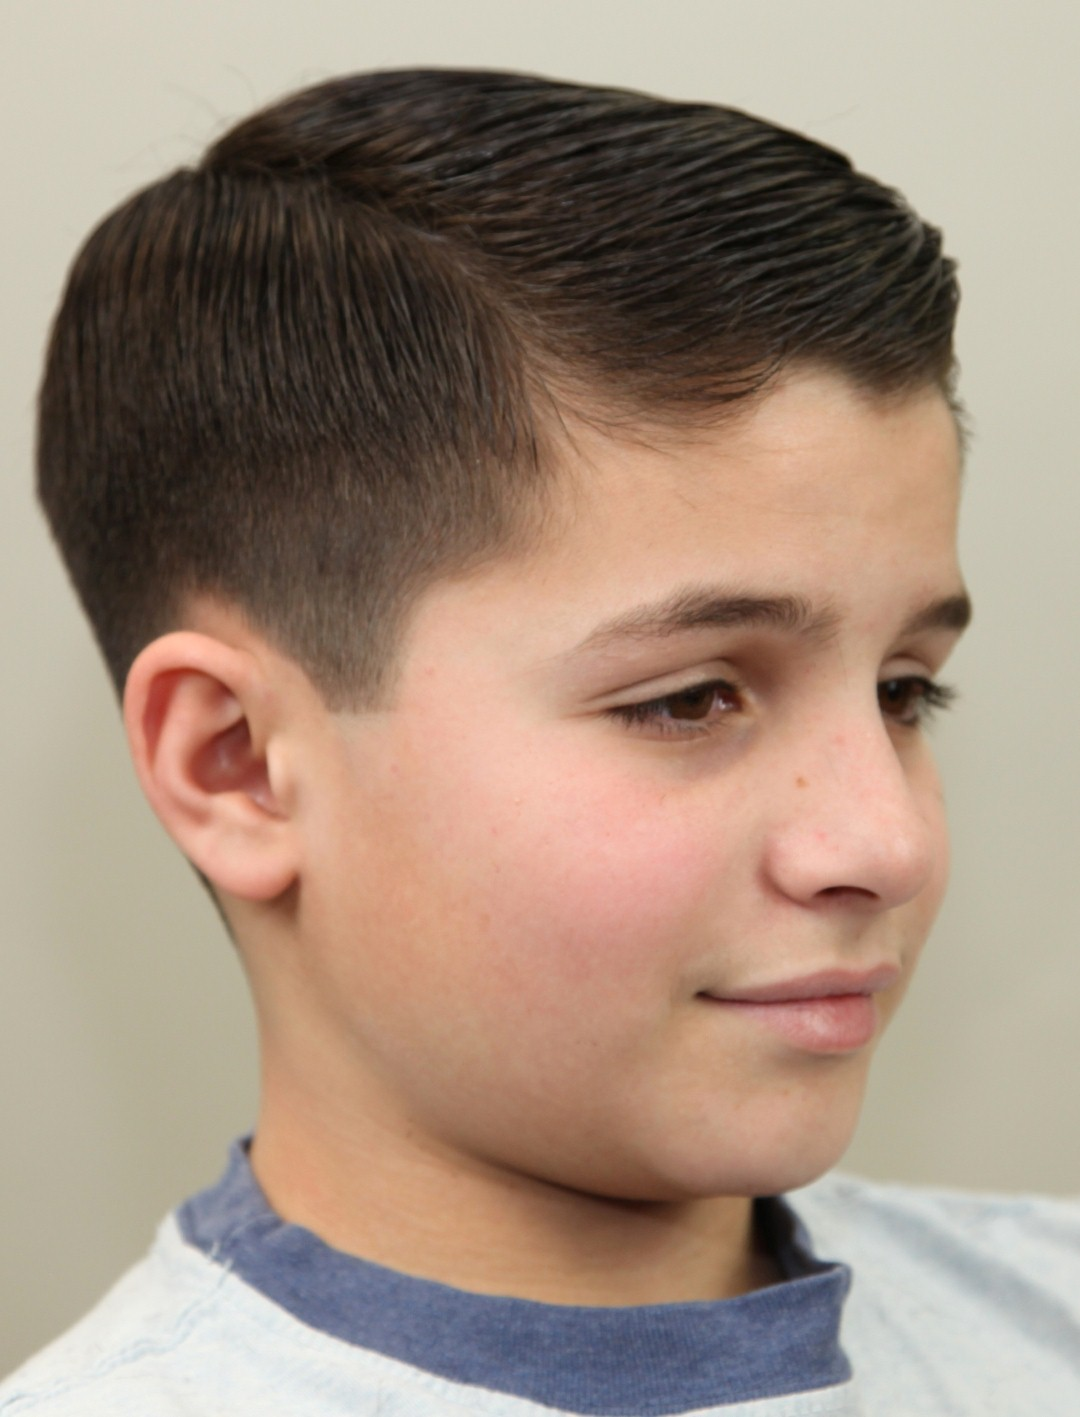 Kids Hairstyles and Haircuts Ideas  The Xerxes